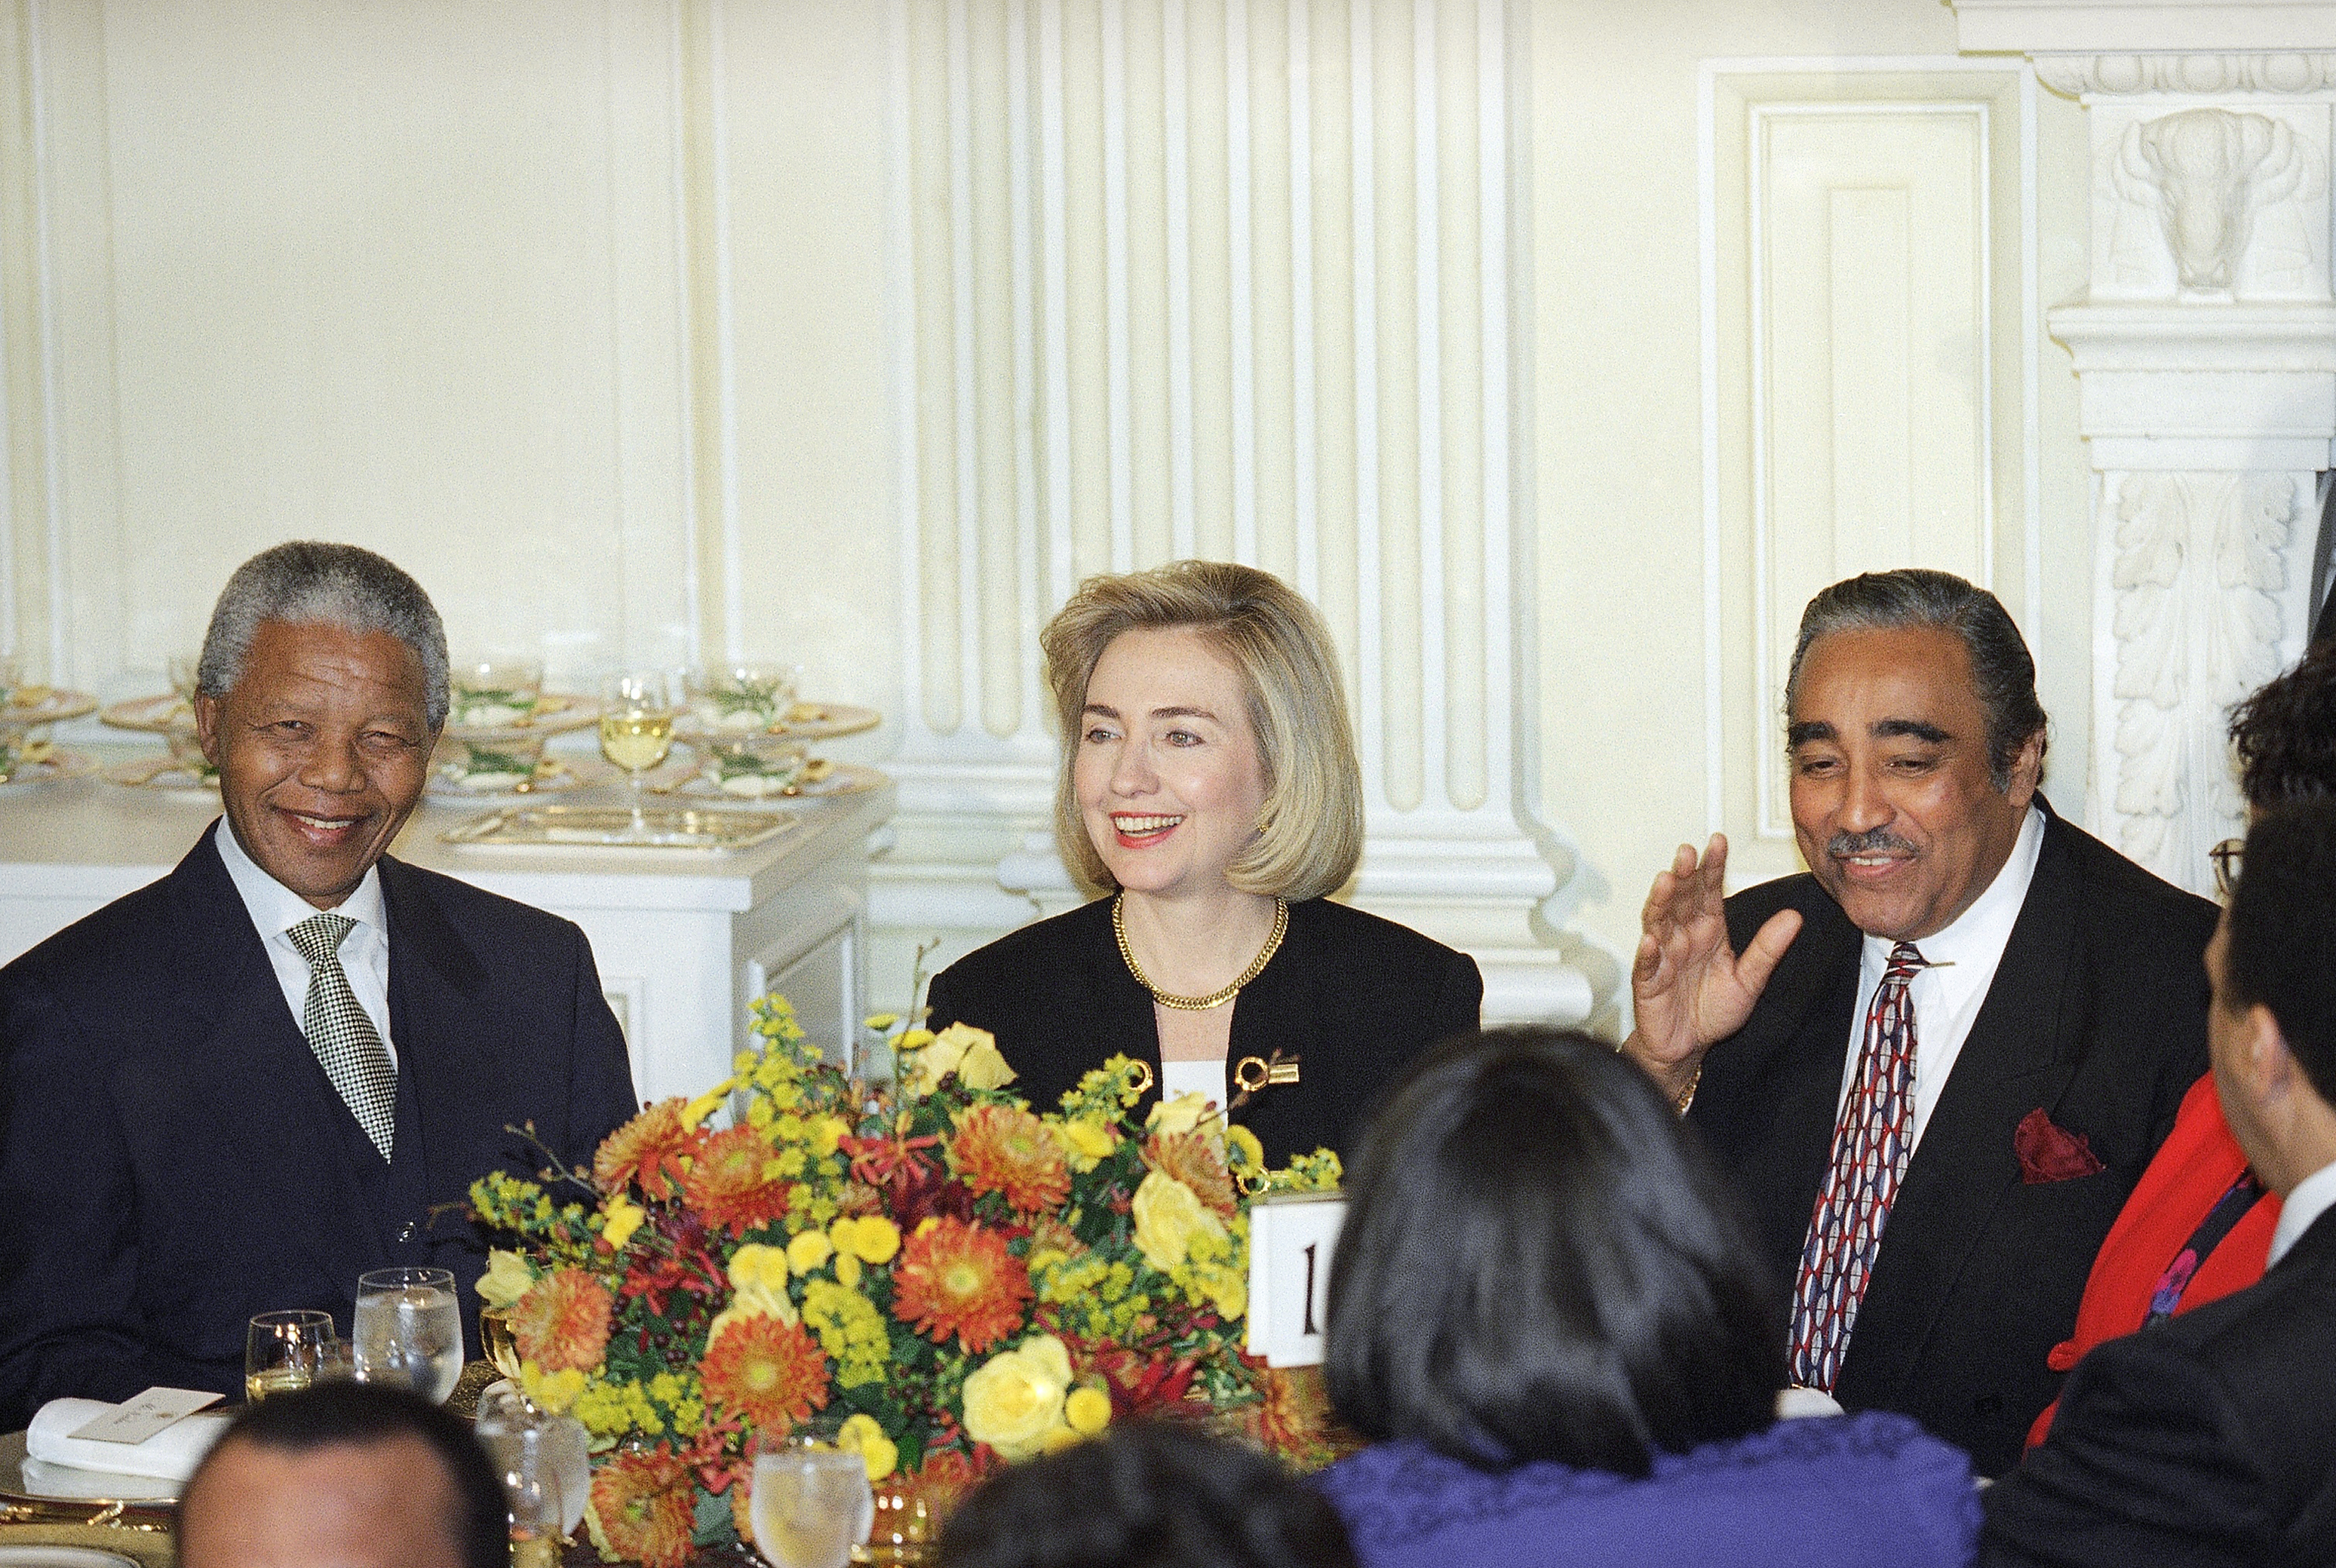 South African President Nelson Mandela, left, and first lady Hillary Rodham Clinton are joined by Rep. Charles Rangel, D-N.Y., during a luncheon at the White House in Washington on Oct. 5, 1994.